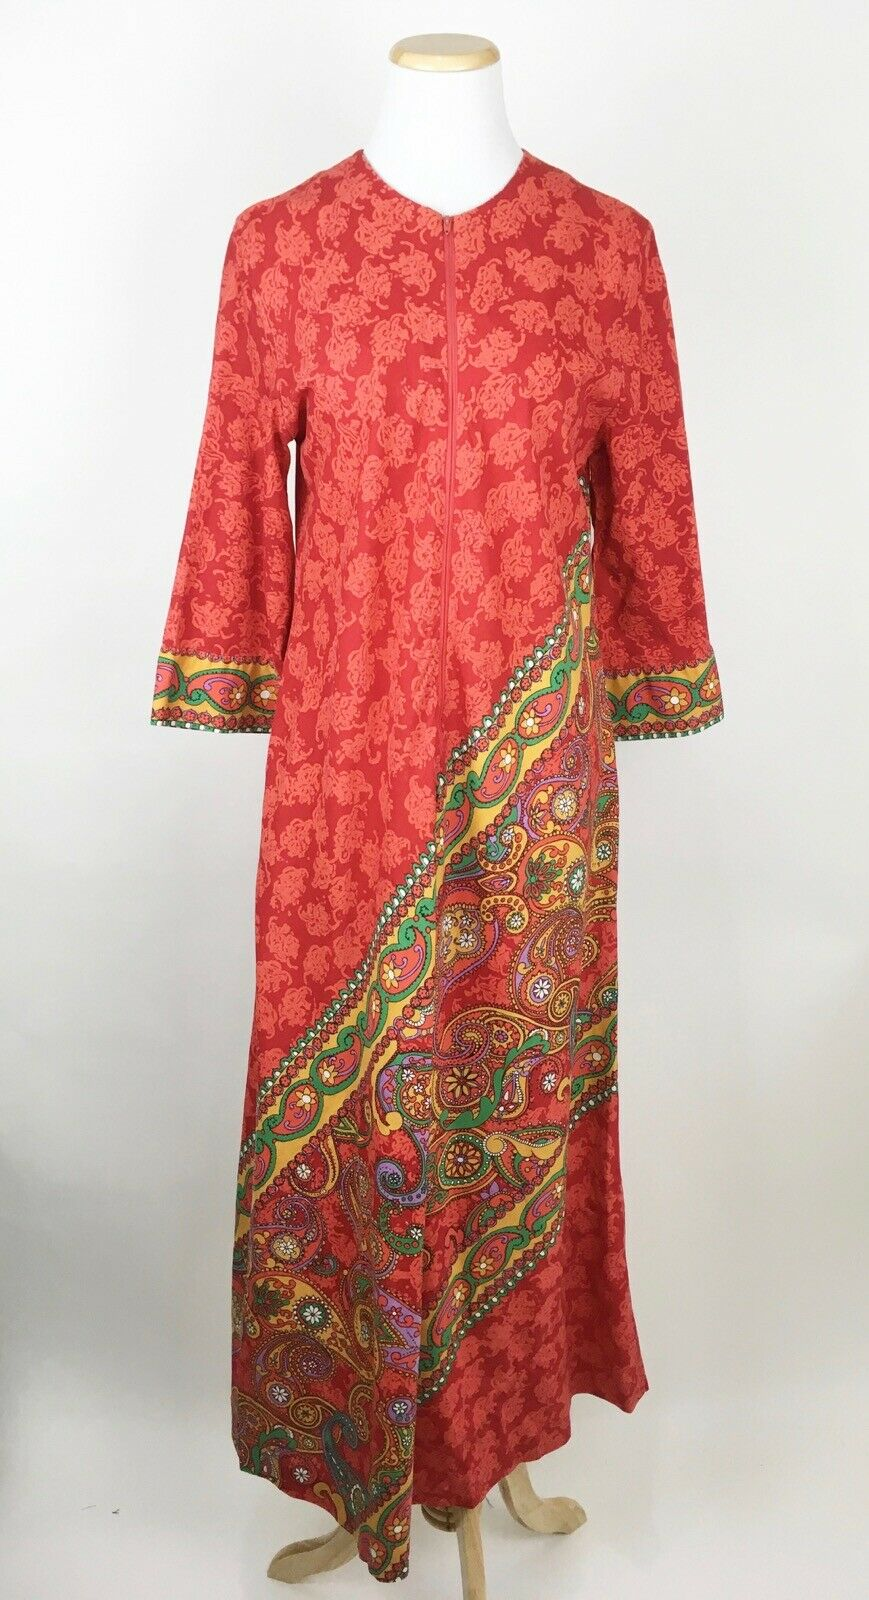 VTG 60s 70s KEYLOUN Hippie House Dress S M Zip Front rot Paisley Caftan Maxi